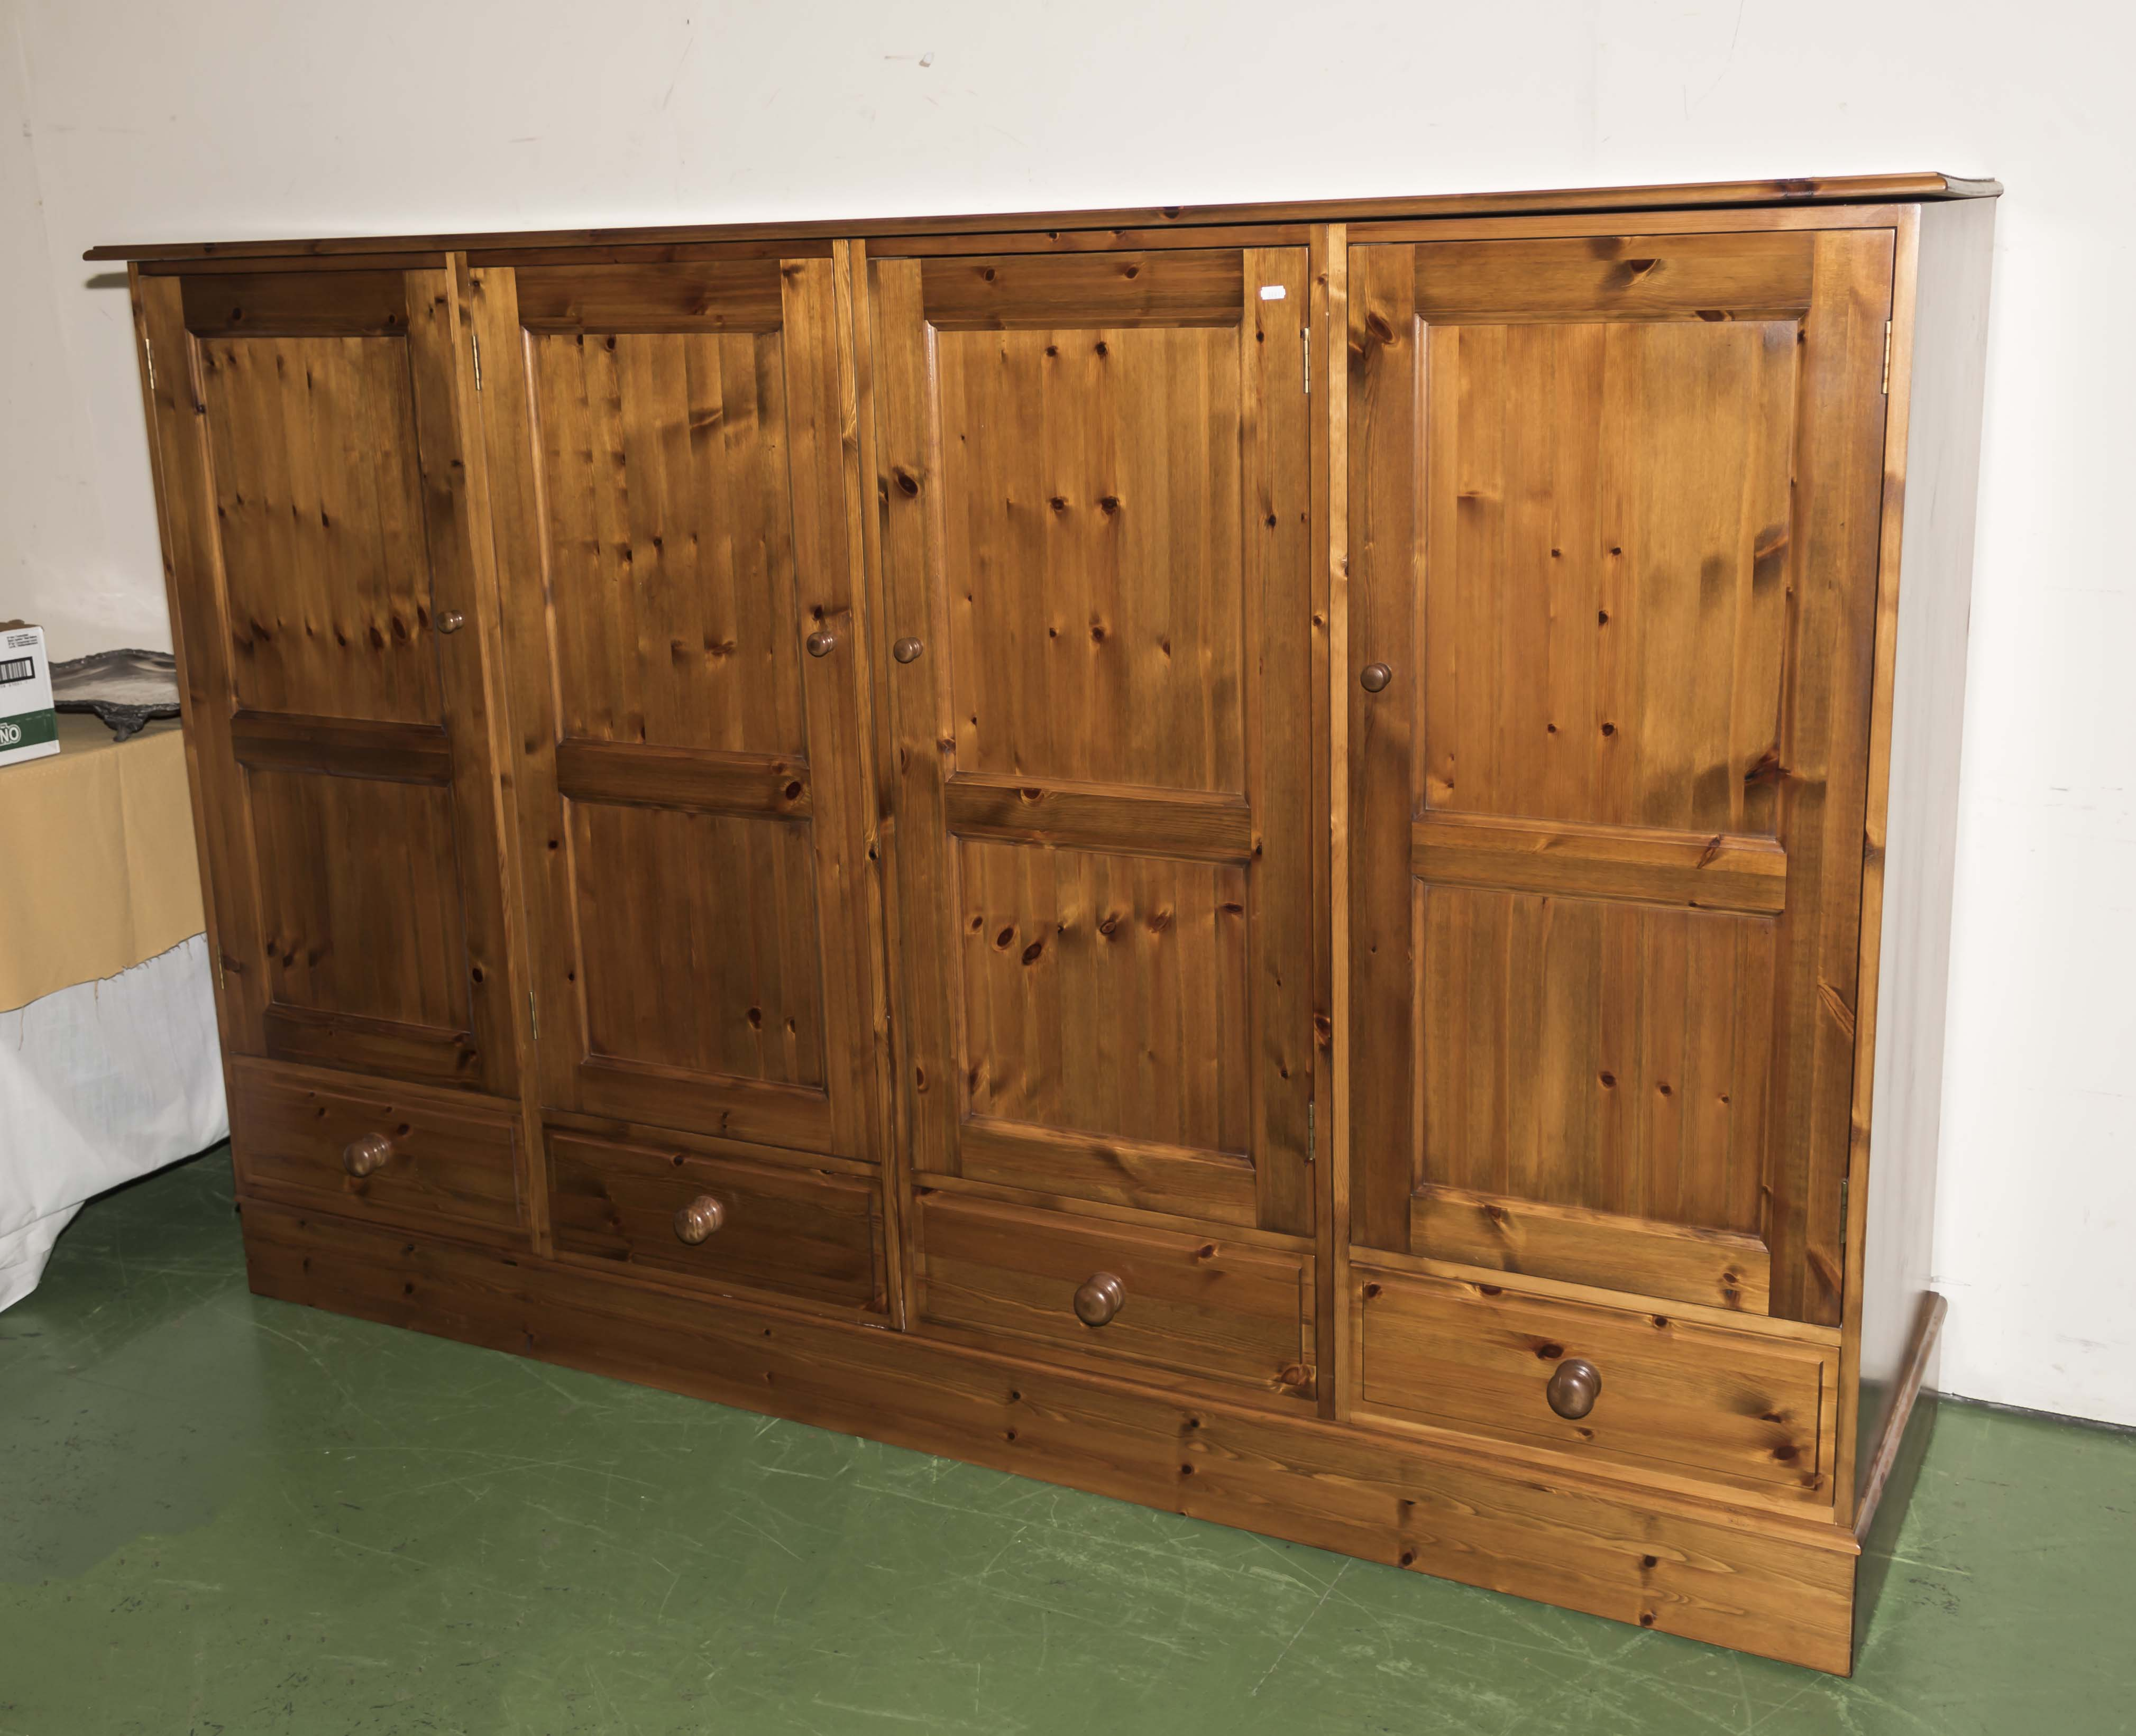 Lot 31 - A pine low wardrobe with drawers